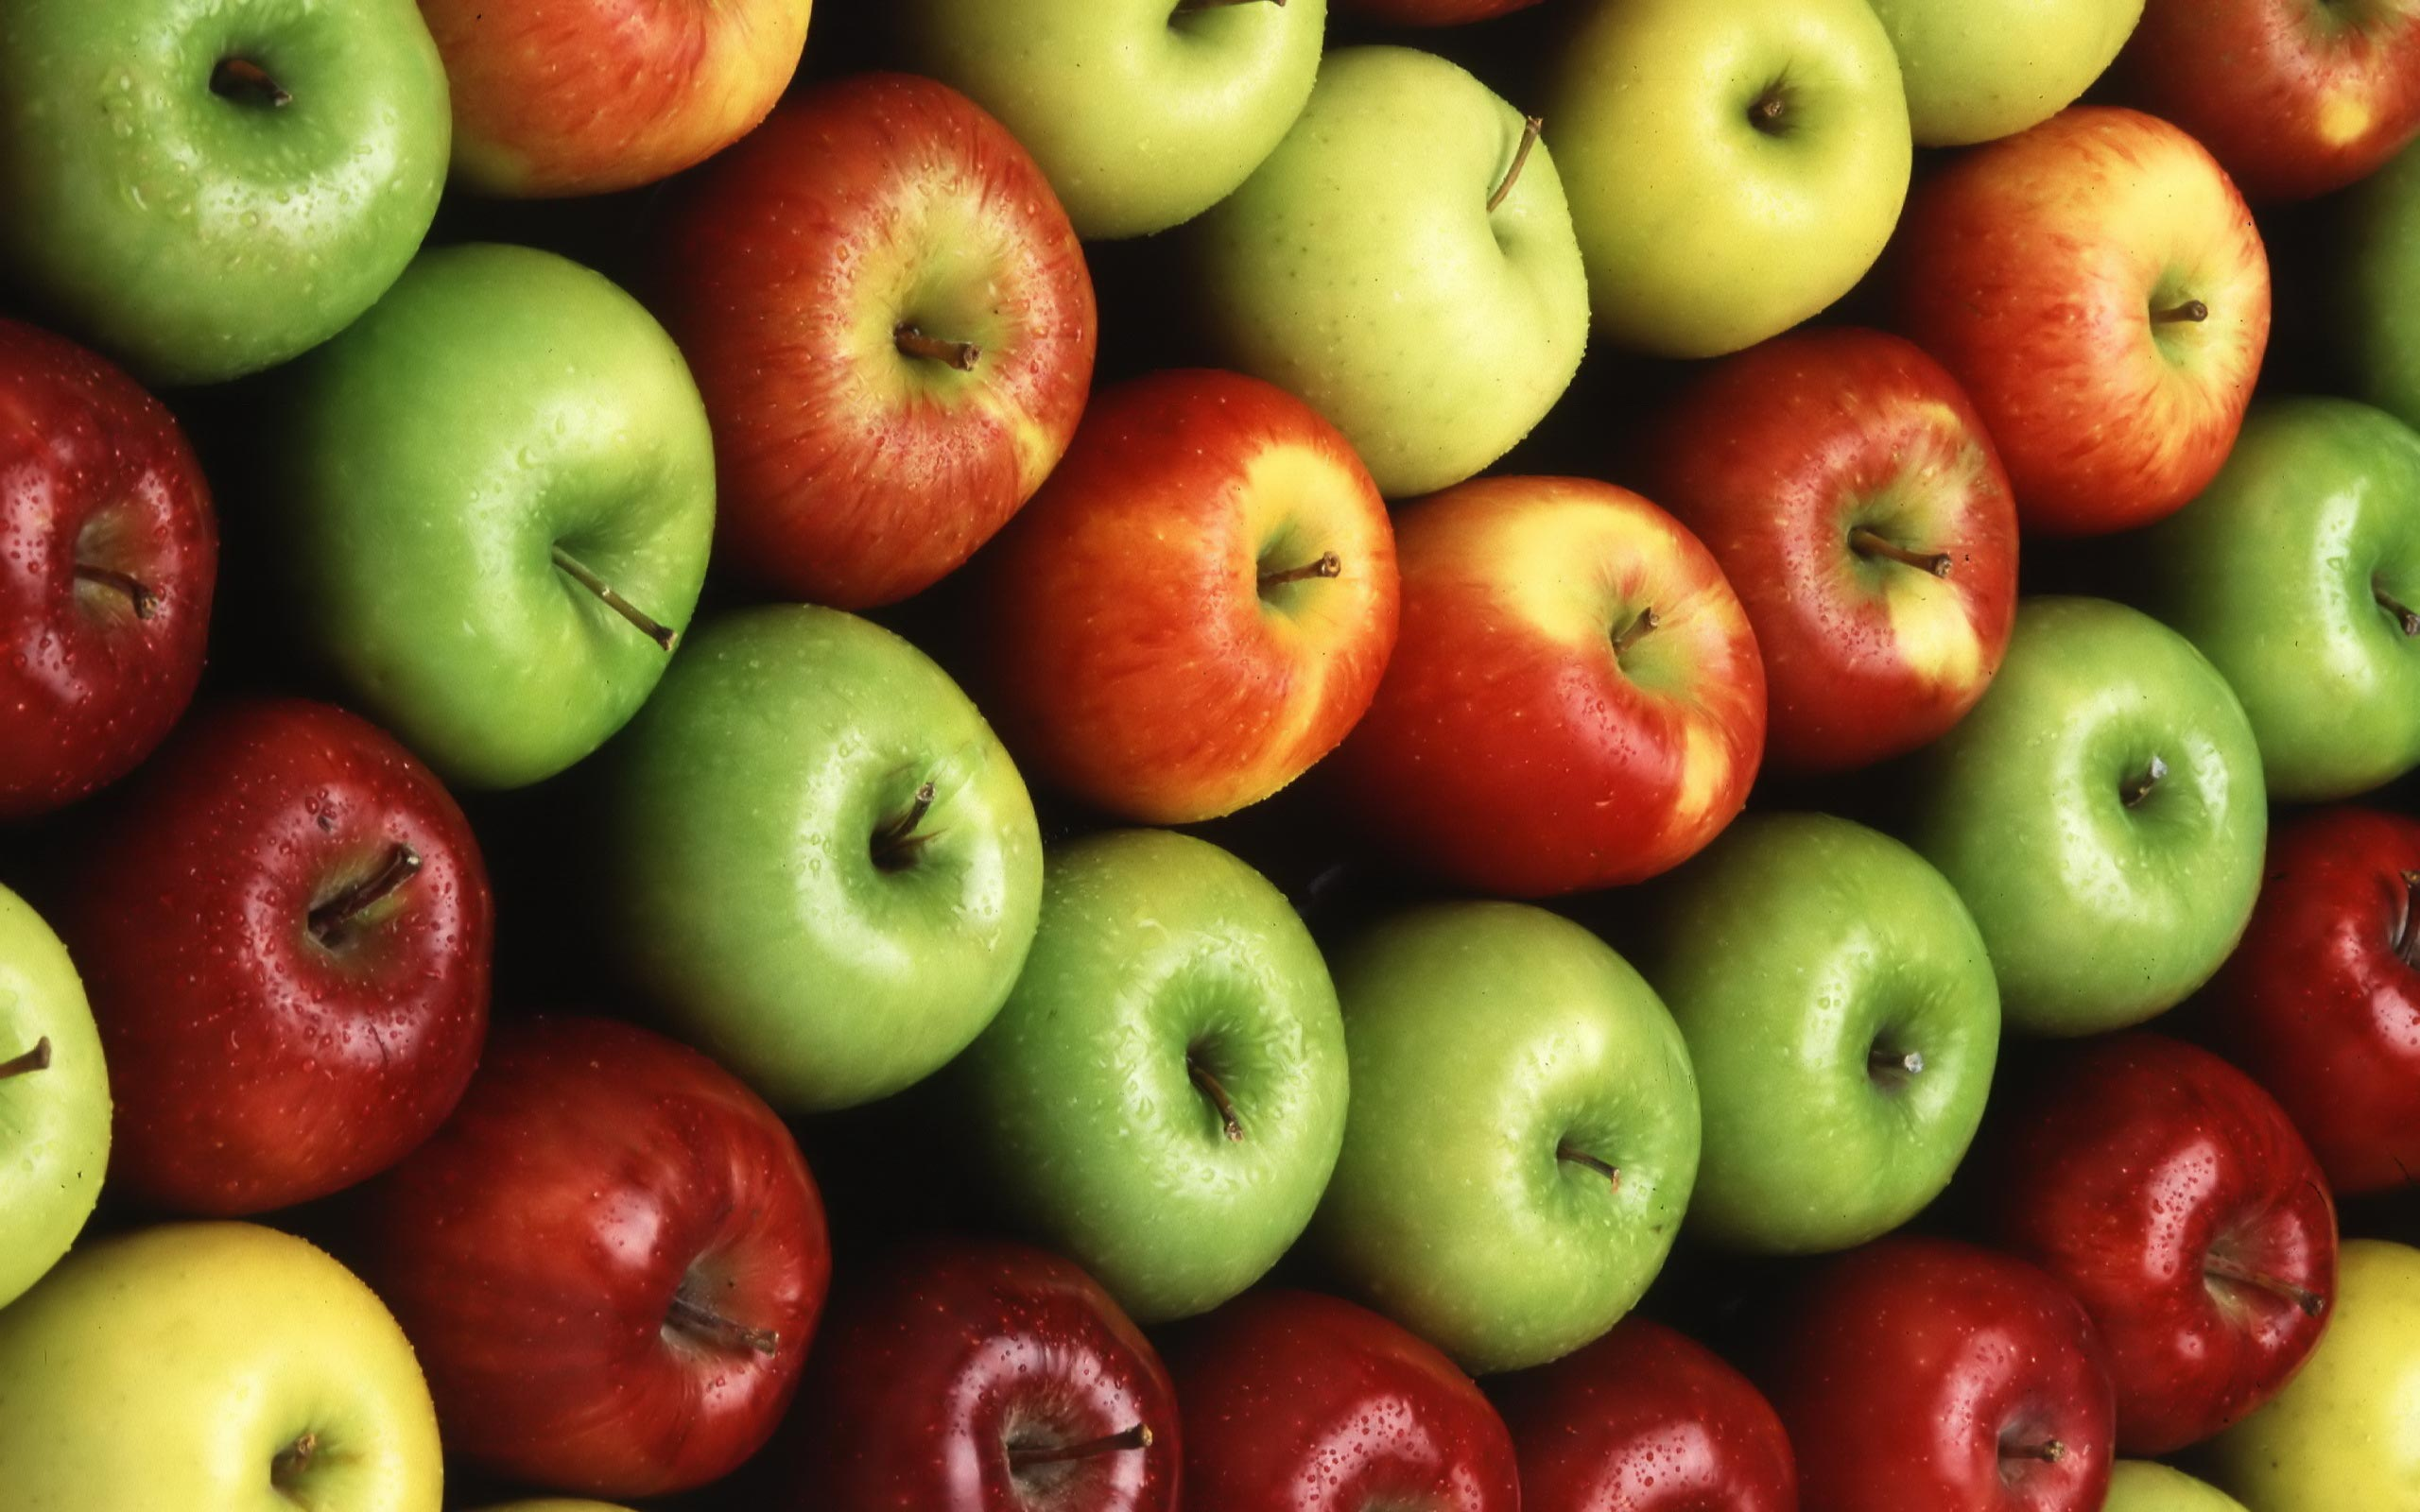 glamorous-assorted-apples-pictures-hd-wallpaper-hd-pictures